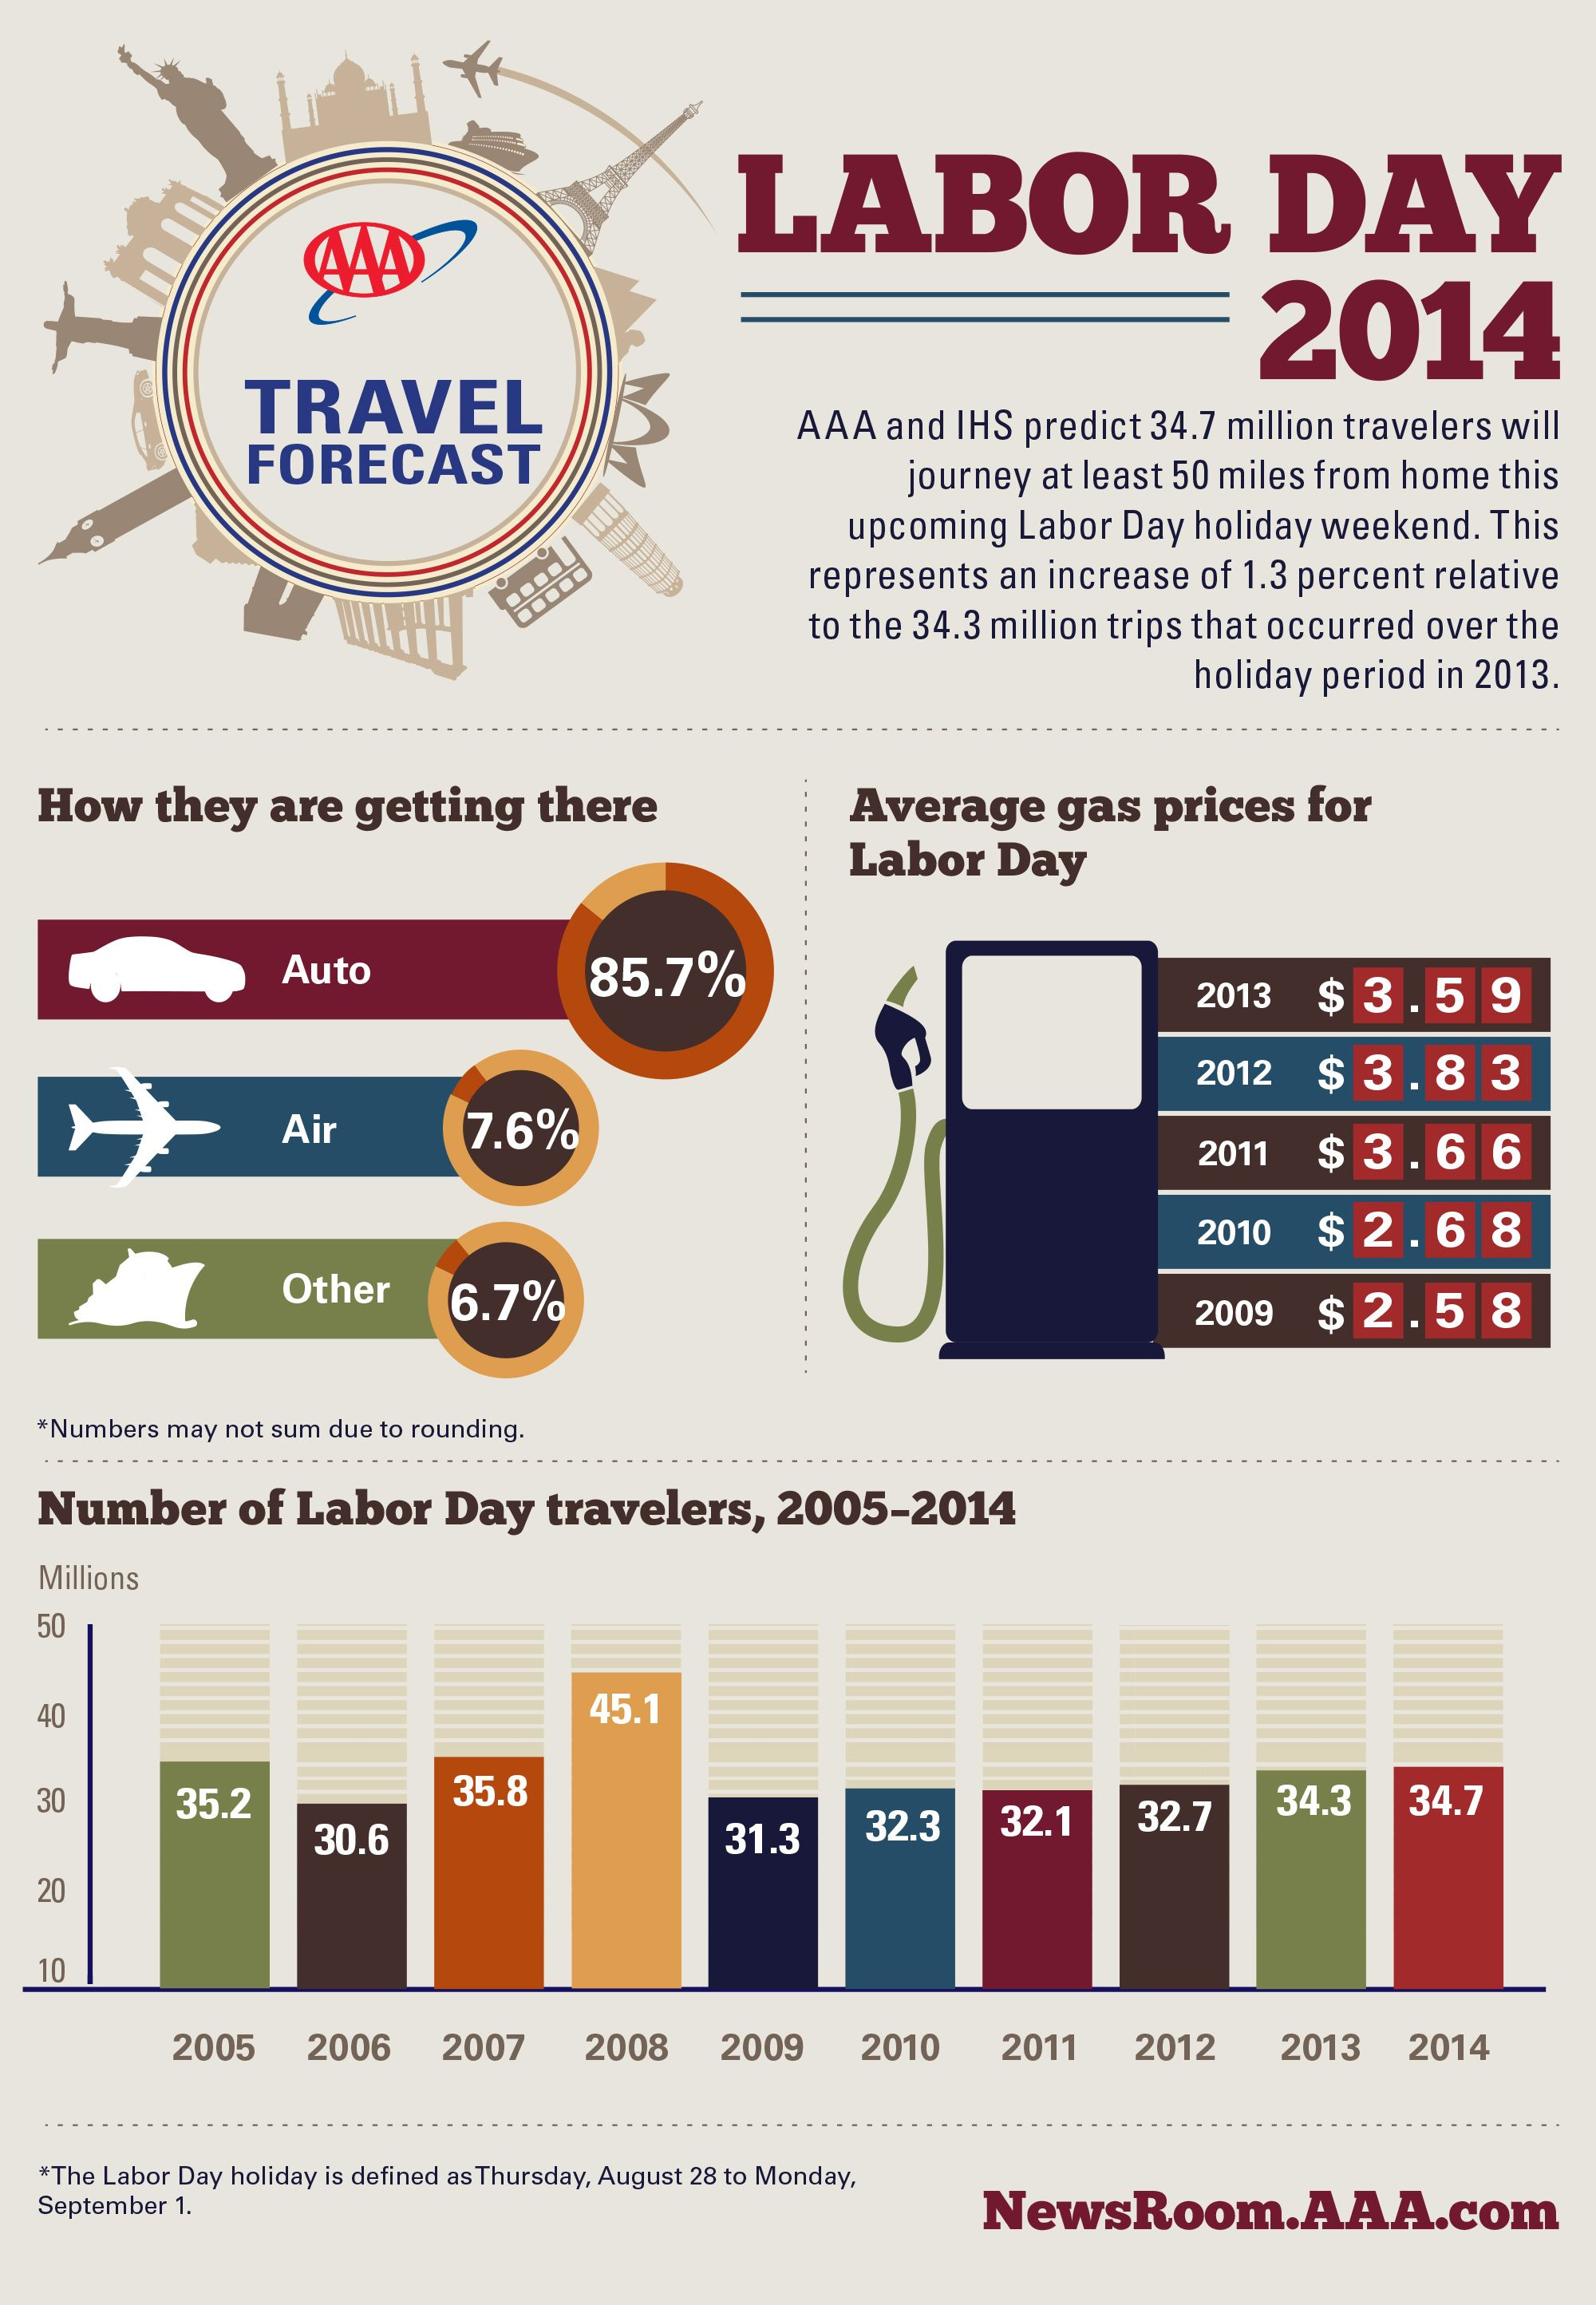 Aaa Predicts Record Number Of Travelers This Labor Day Weekend